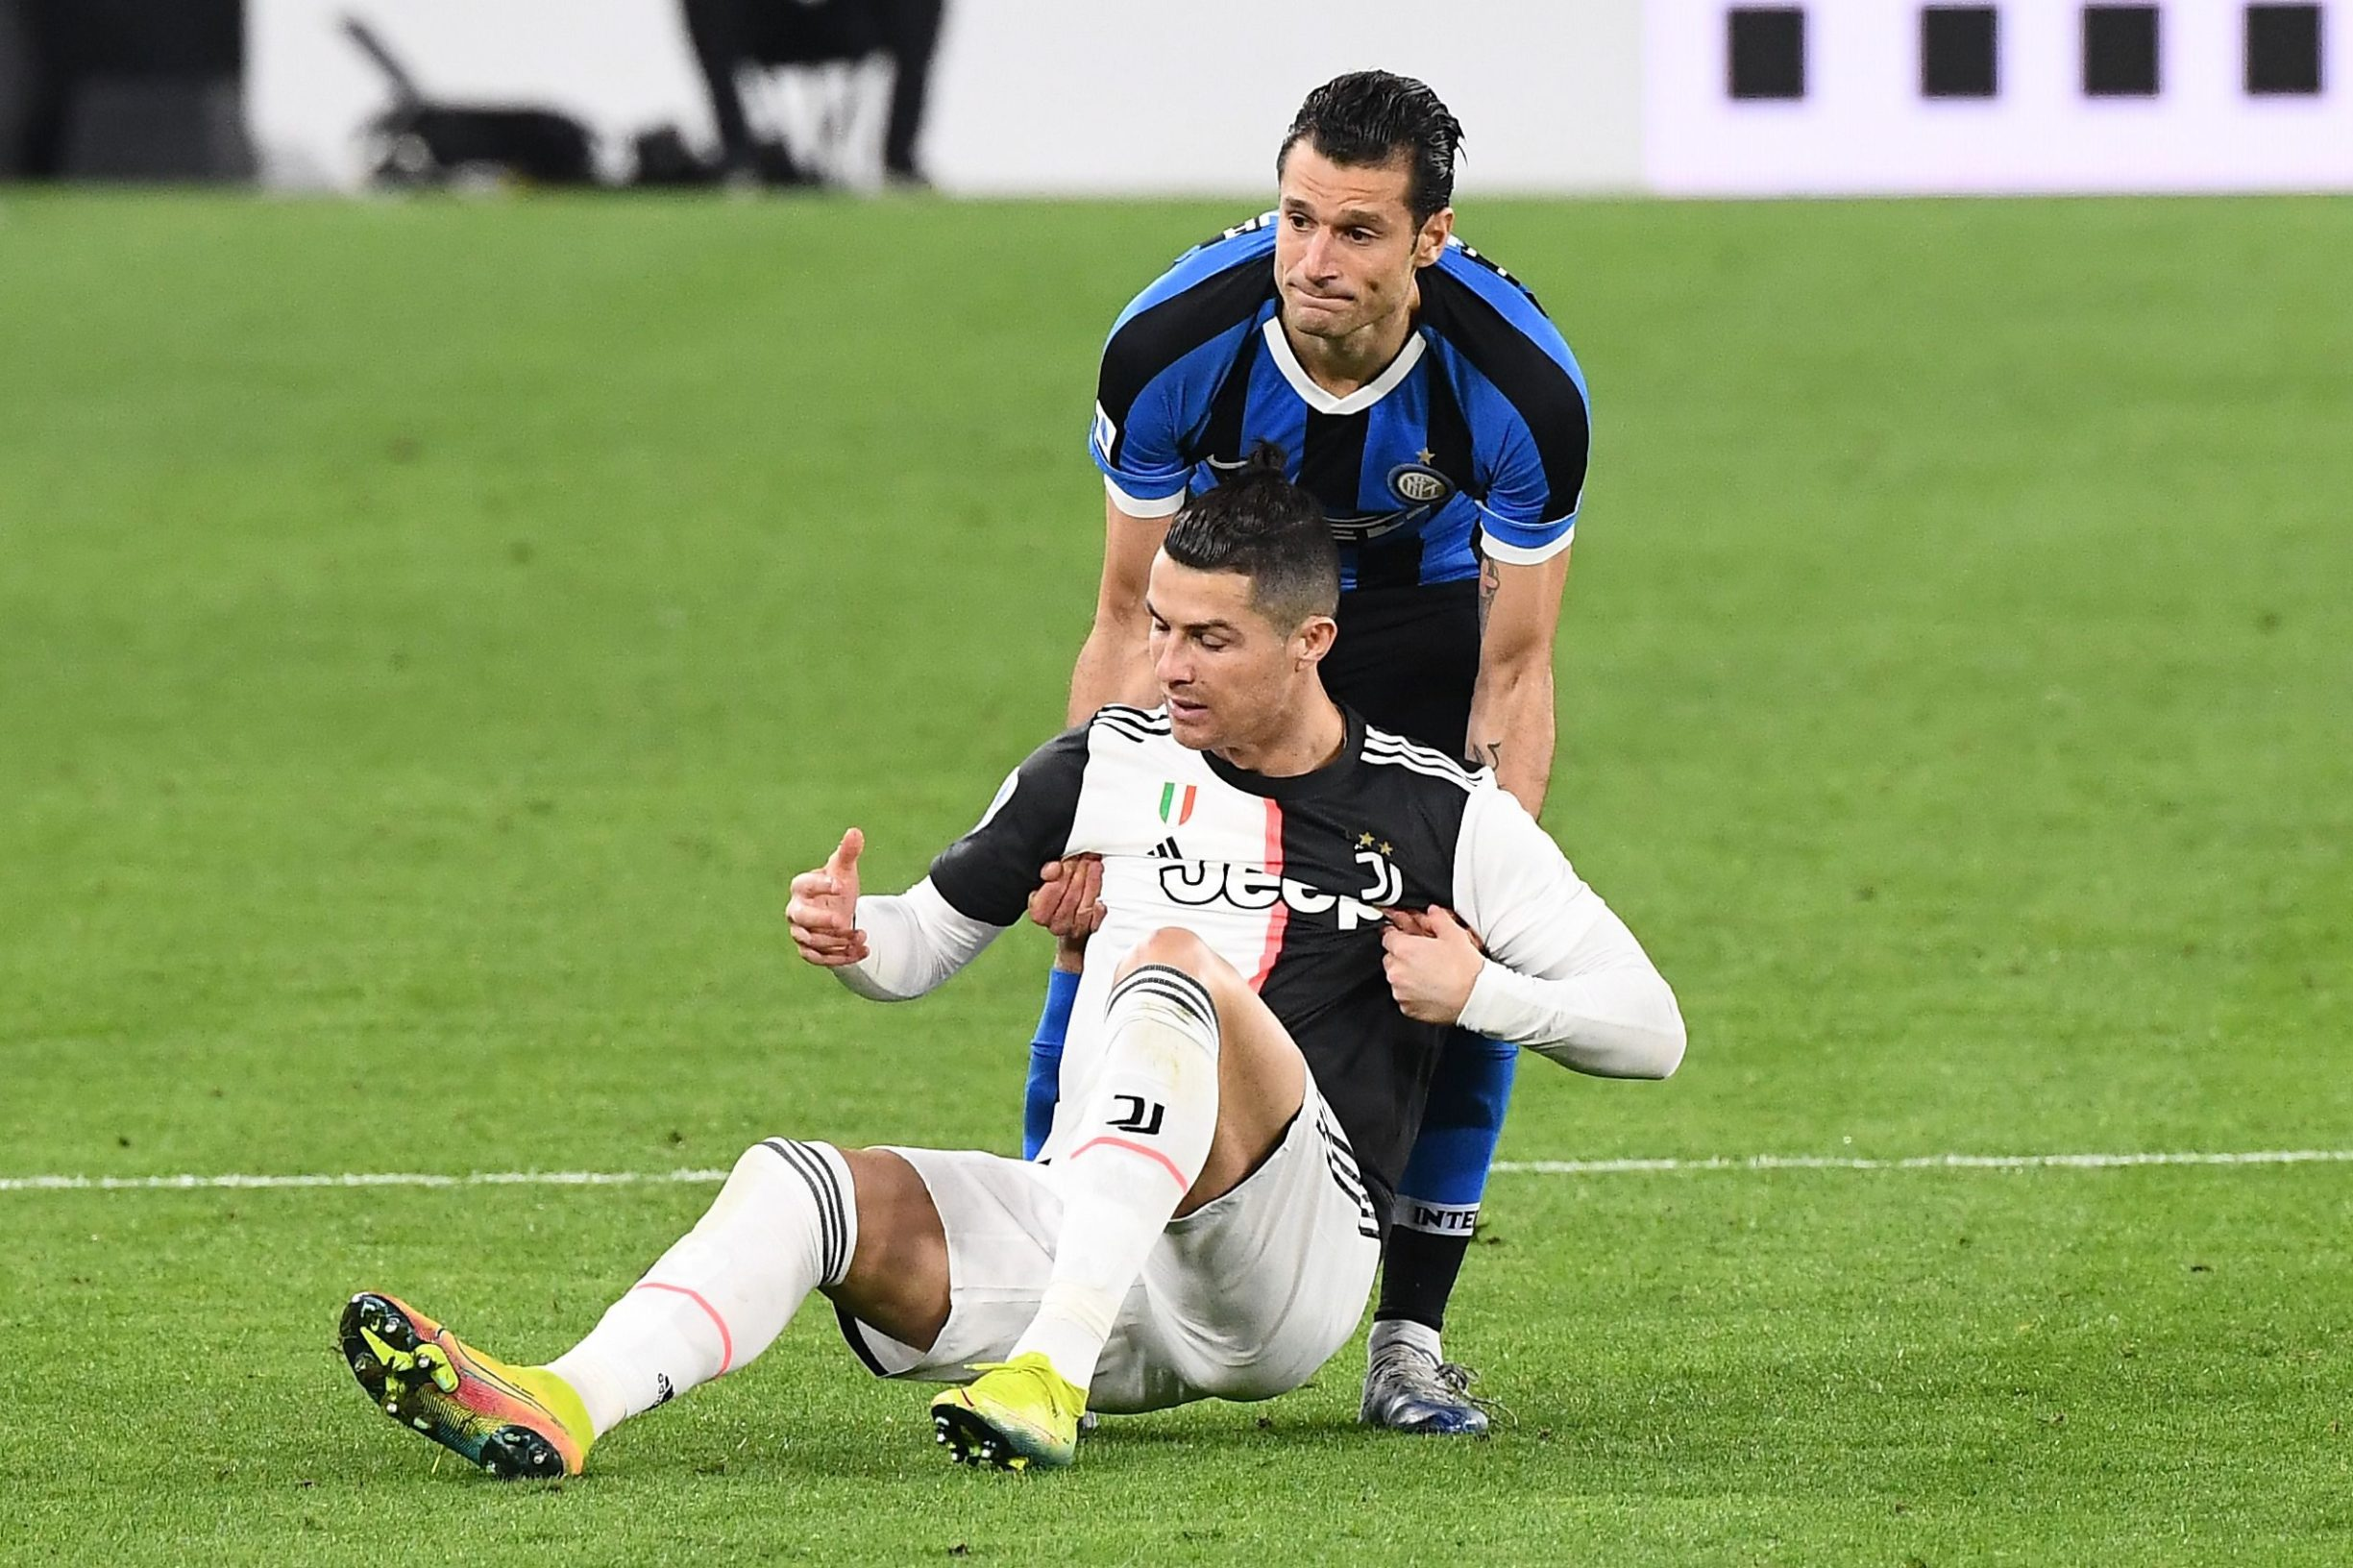 Juventus' Portuguese forward Cristiano Ronaldo (front) is helped by Inter Milan's Italian forward Antonio Candreva to stand up during the Italian Serie A football match Juventus vs Inter Milan, at the Juventus stadium in Turin on March 8, 2020. - The match is played behind closed doors due to the novel coronavirus outbreak. (Photo by Vincenzo PINTO / AFP)